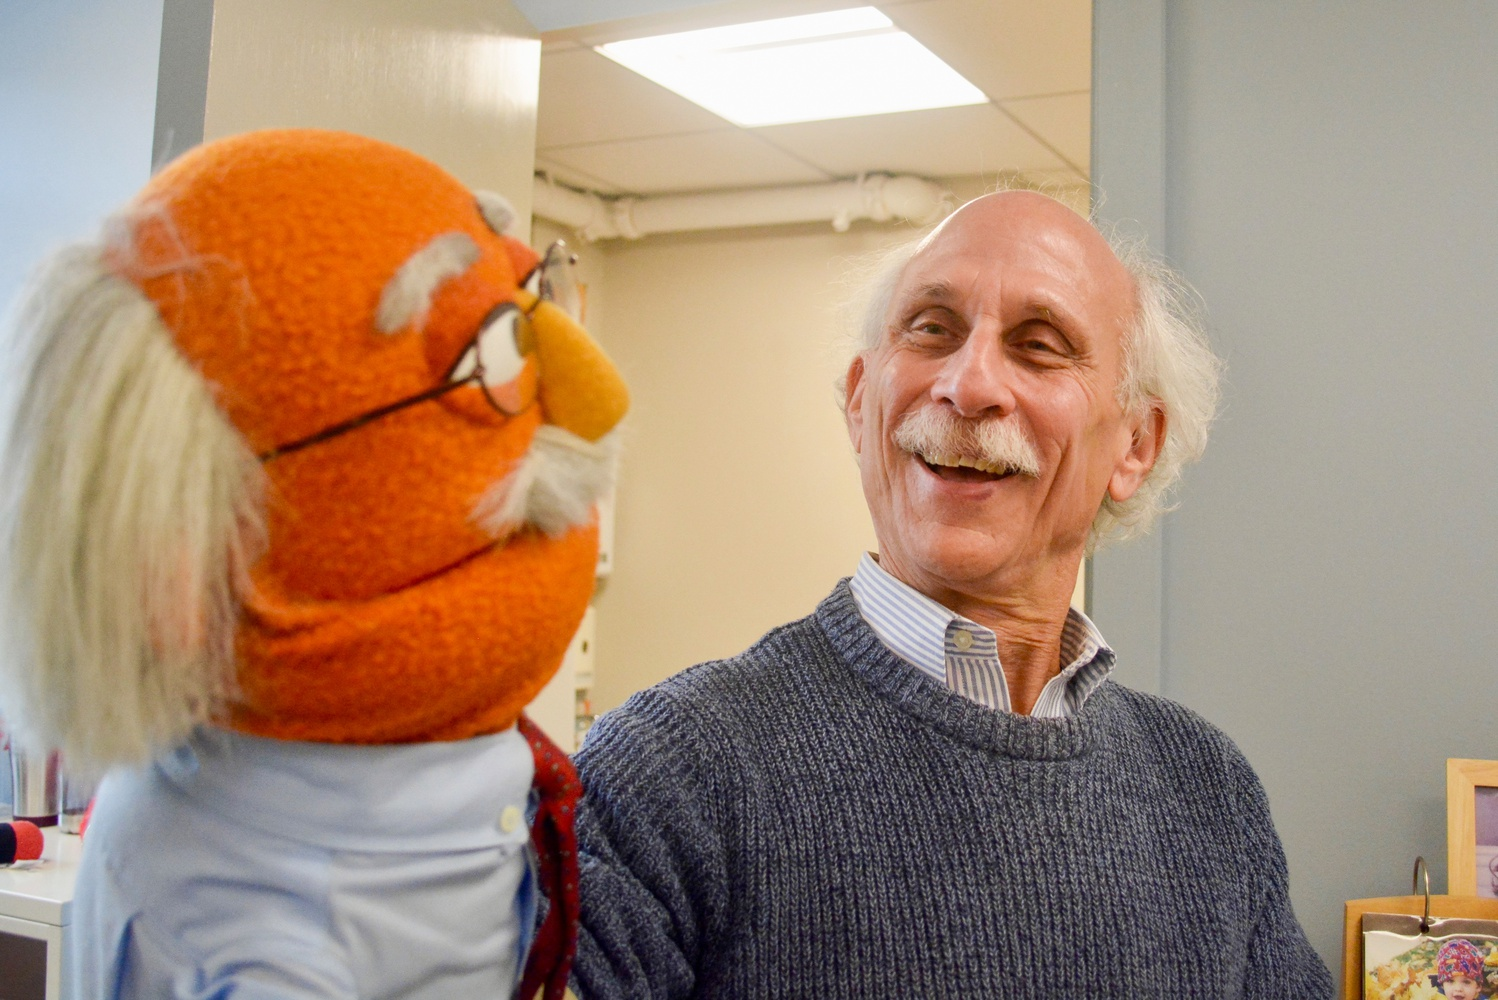 Joseph Blatt, the faculty director of the Master's Program in Technology, Innovation and Education, laughs with his muppet in his office Friday afternoon.